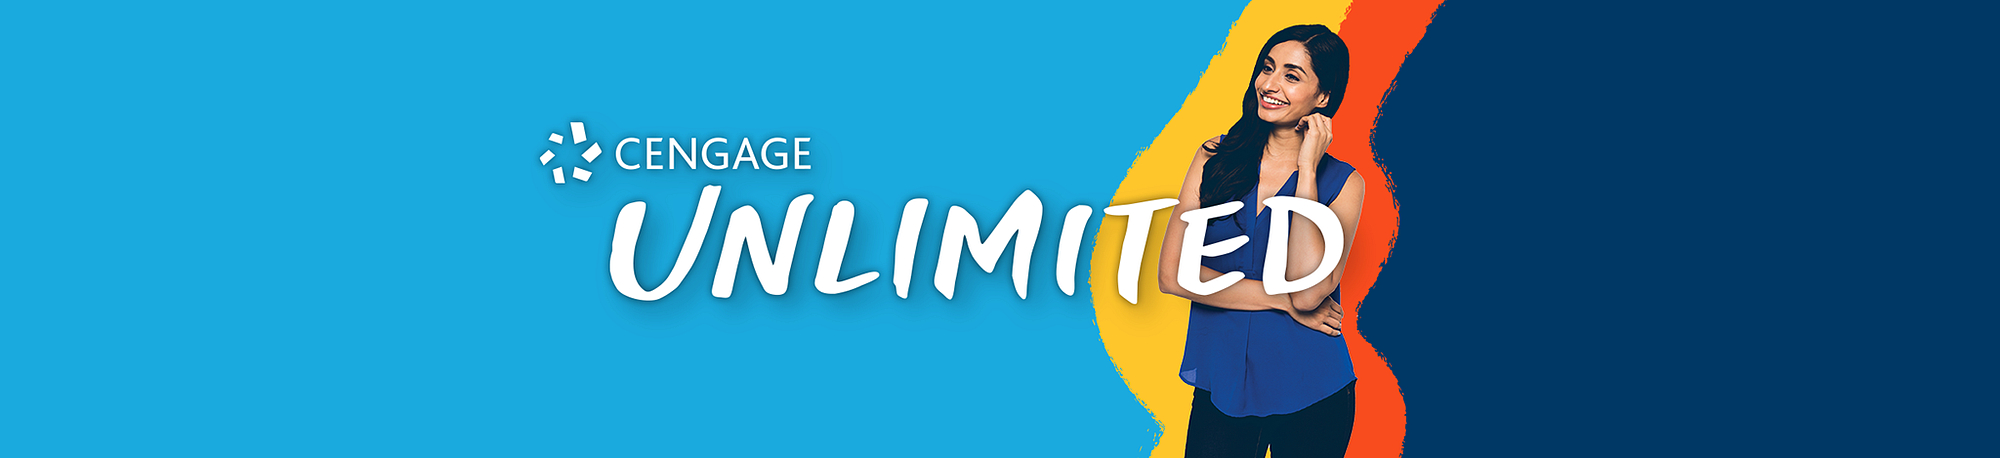 Cengage Unlimited - We're giving you everything we've got